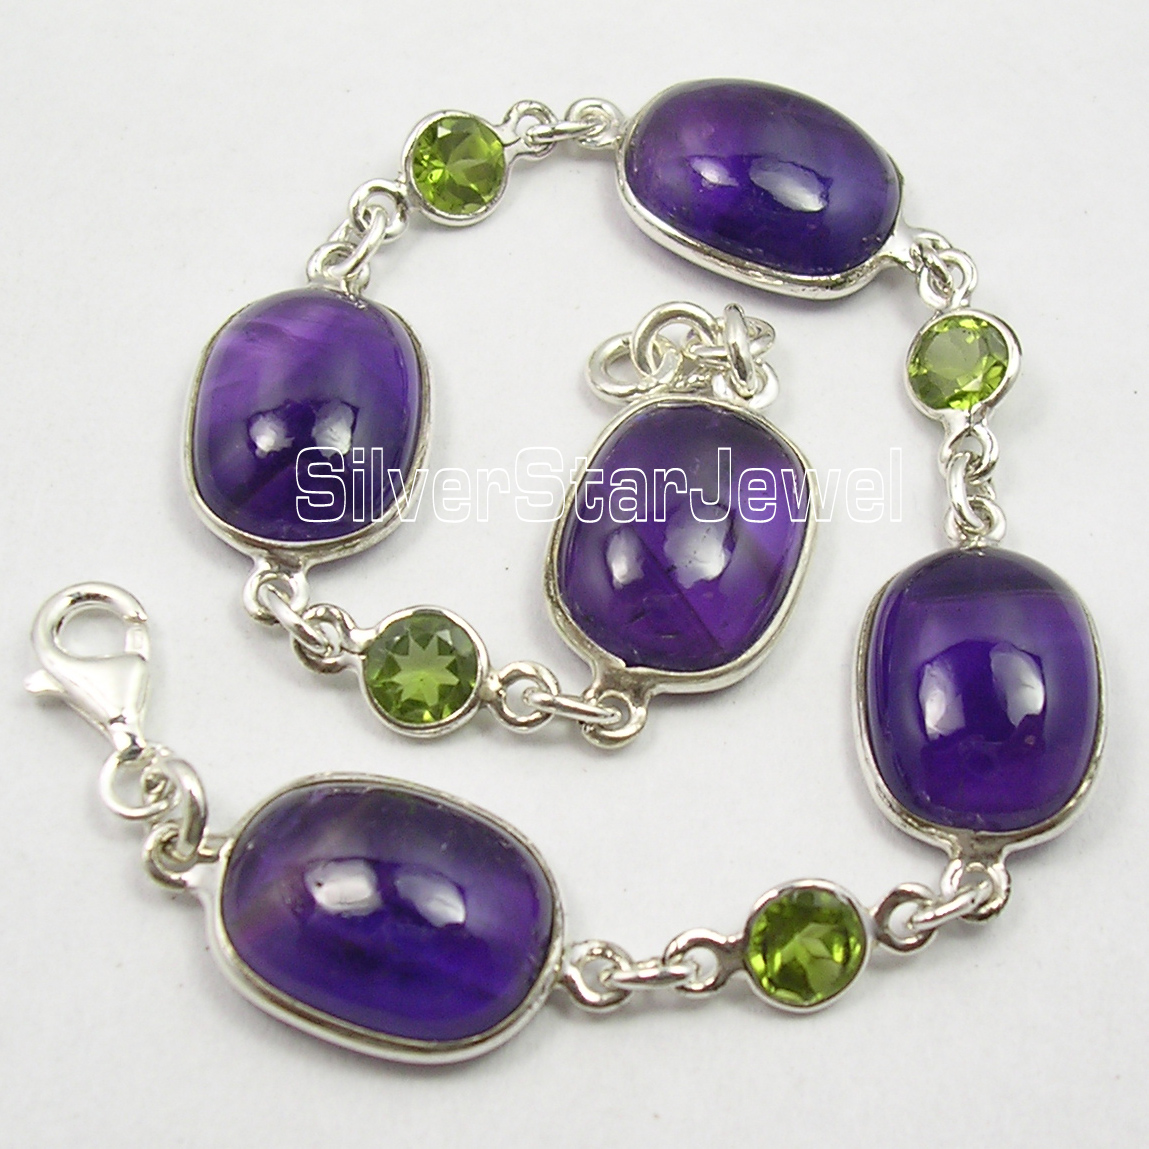 Chanti International Solid Silver Real Amethysts & PERIDOT Heavy Bracelet 8 3/8 Inches 18.0 Grams 3 inches of blood 3 inches of blood long live heavy metal